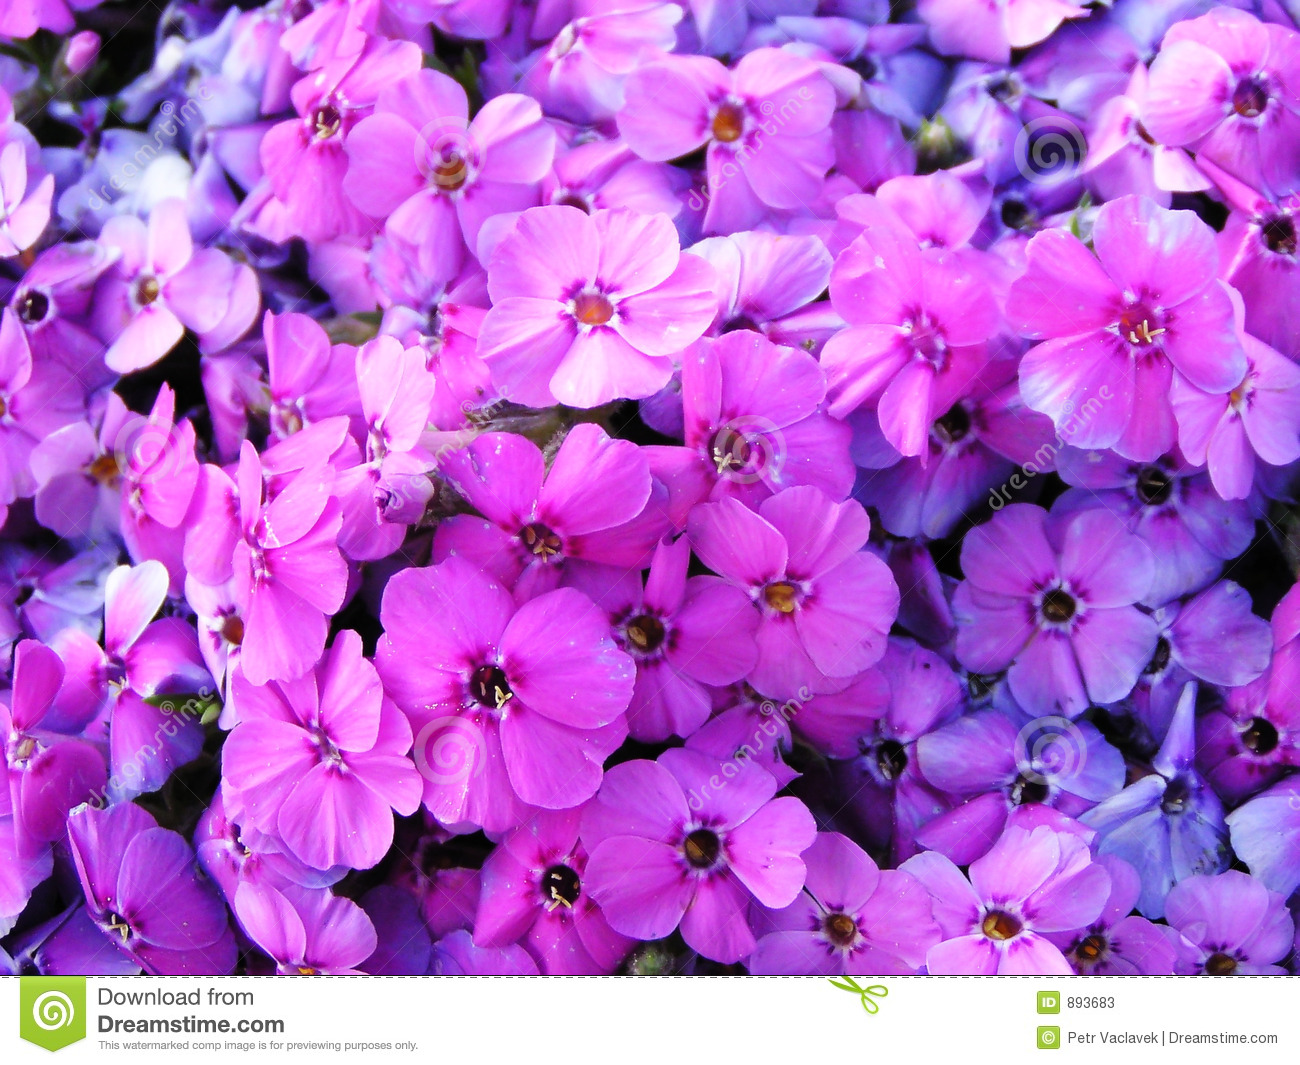 Violet Flower Hd Wallpaper Image Full Of Violet Flowers Stock Image Image Of